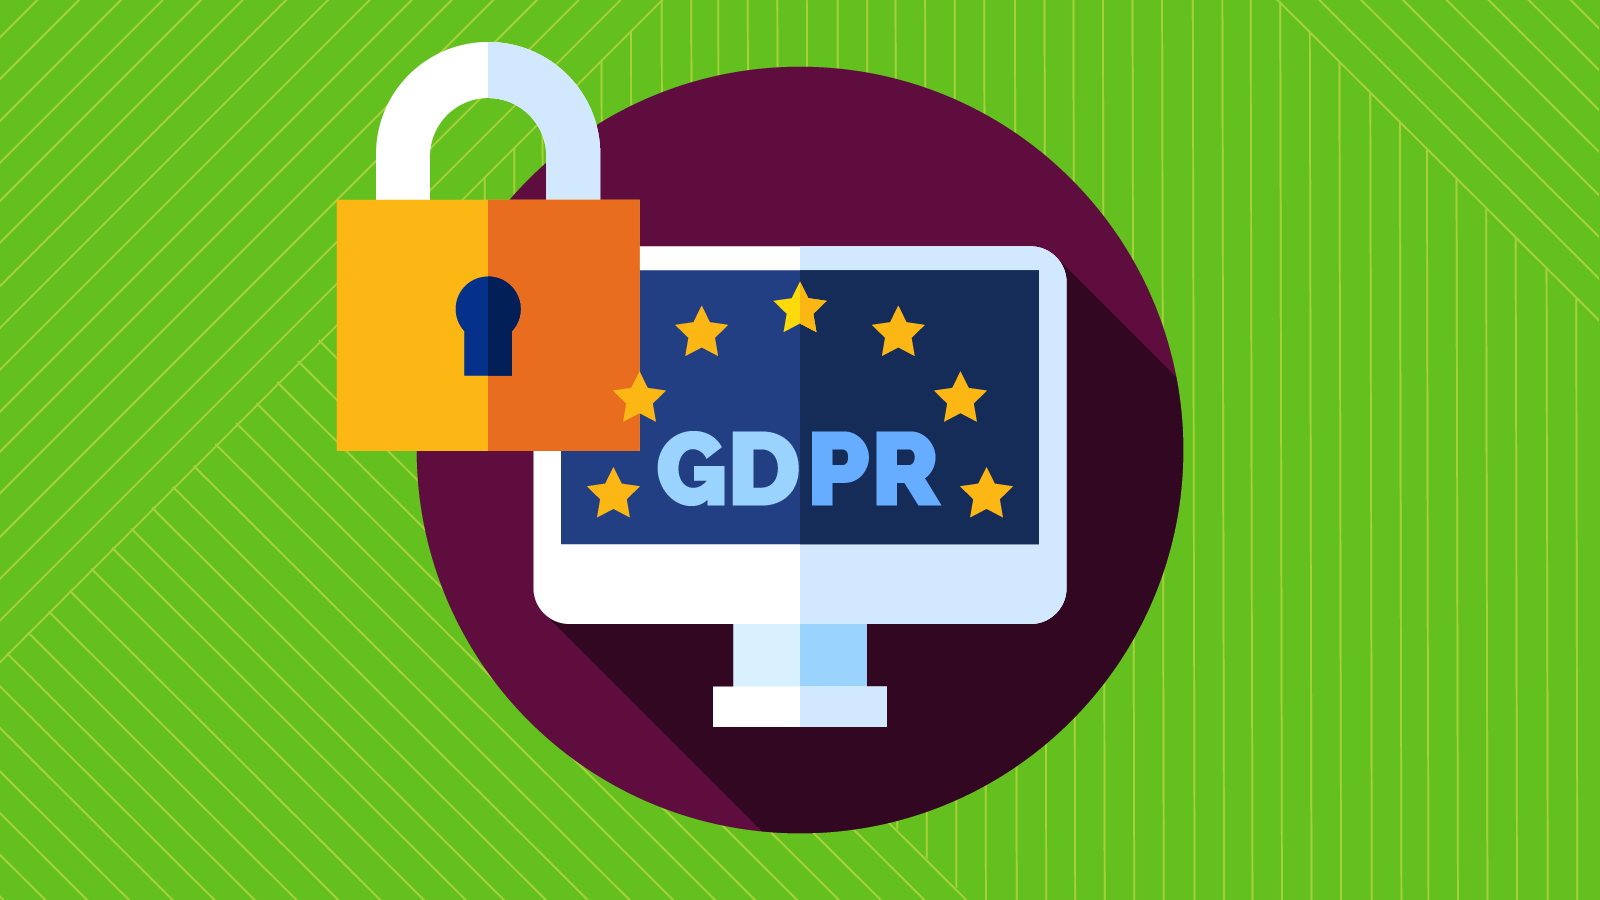 GDPR logo on a computer screen with a security padlock